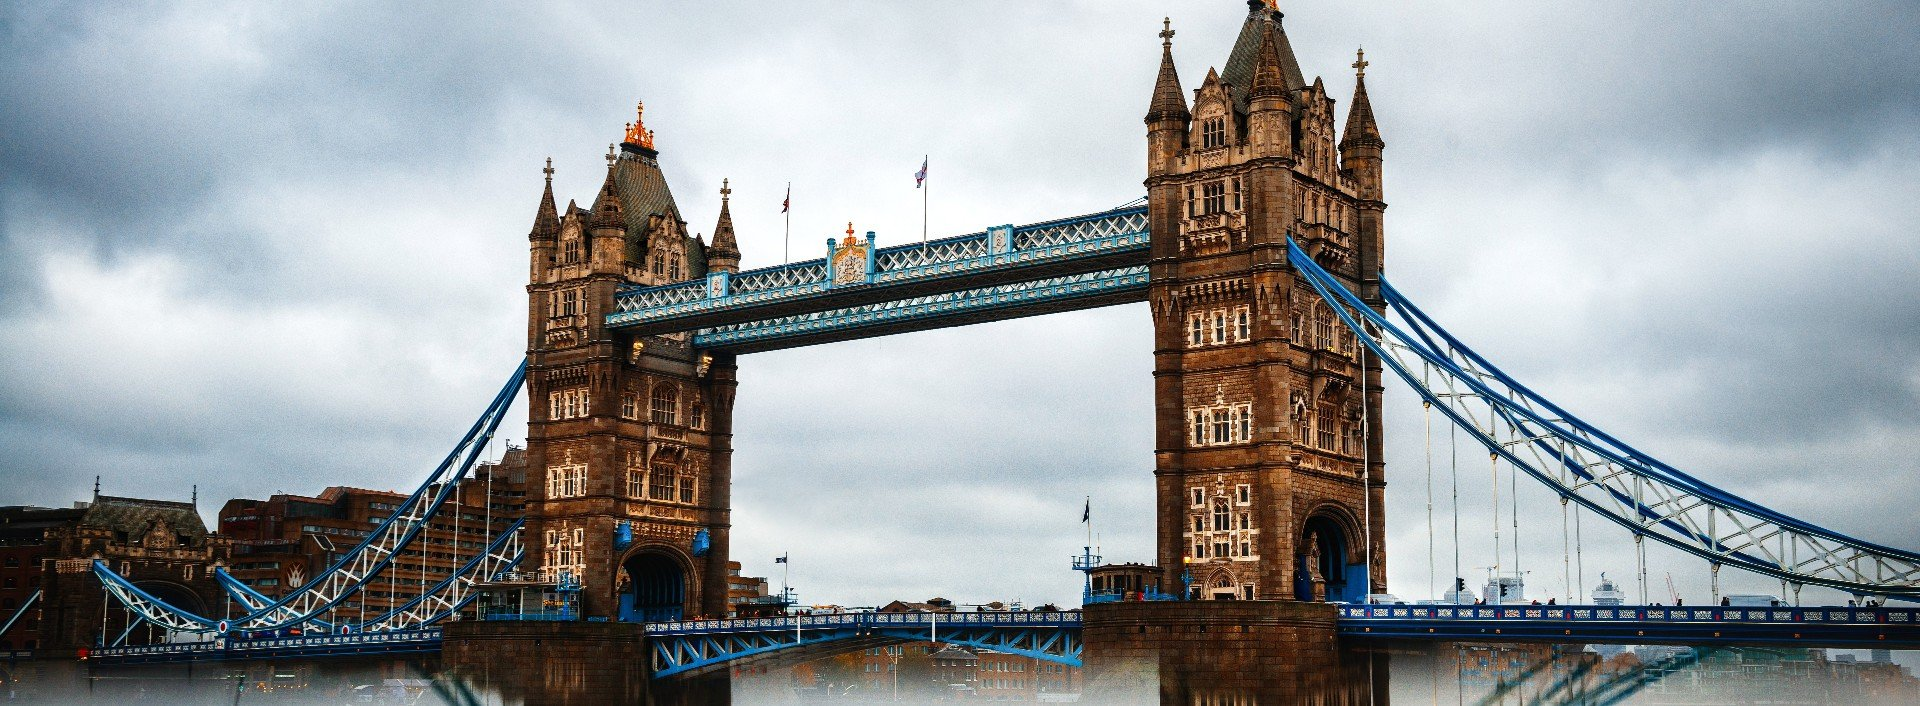 British English Idioms: Tower Bridge in London in front of a cloudy sky